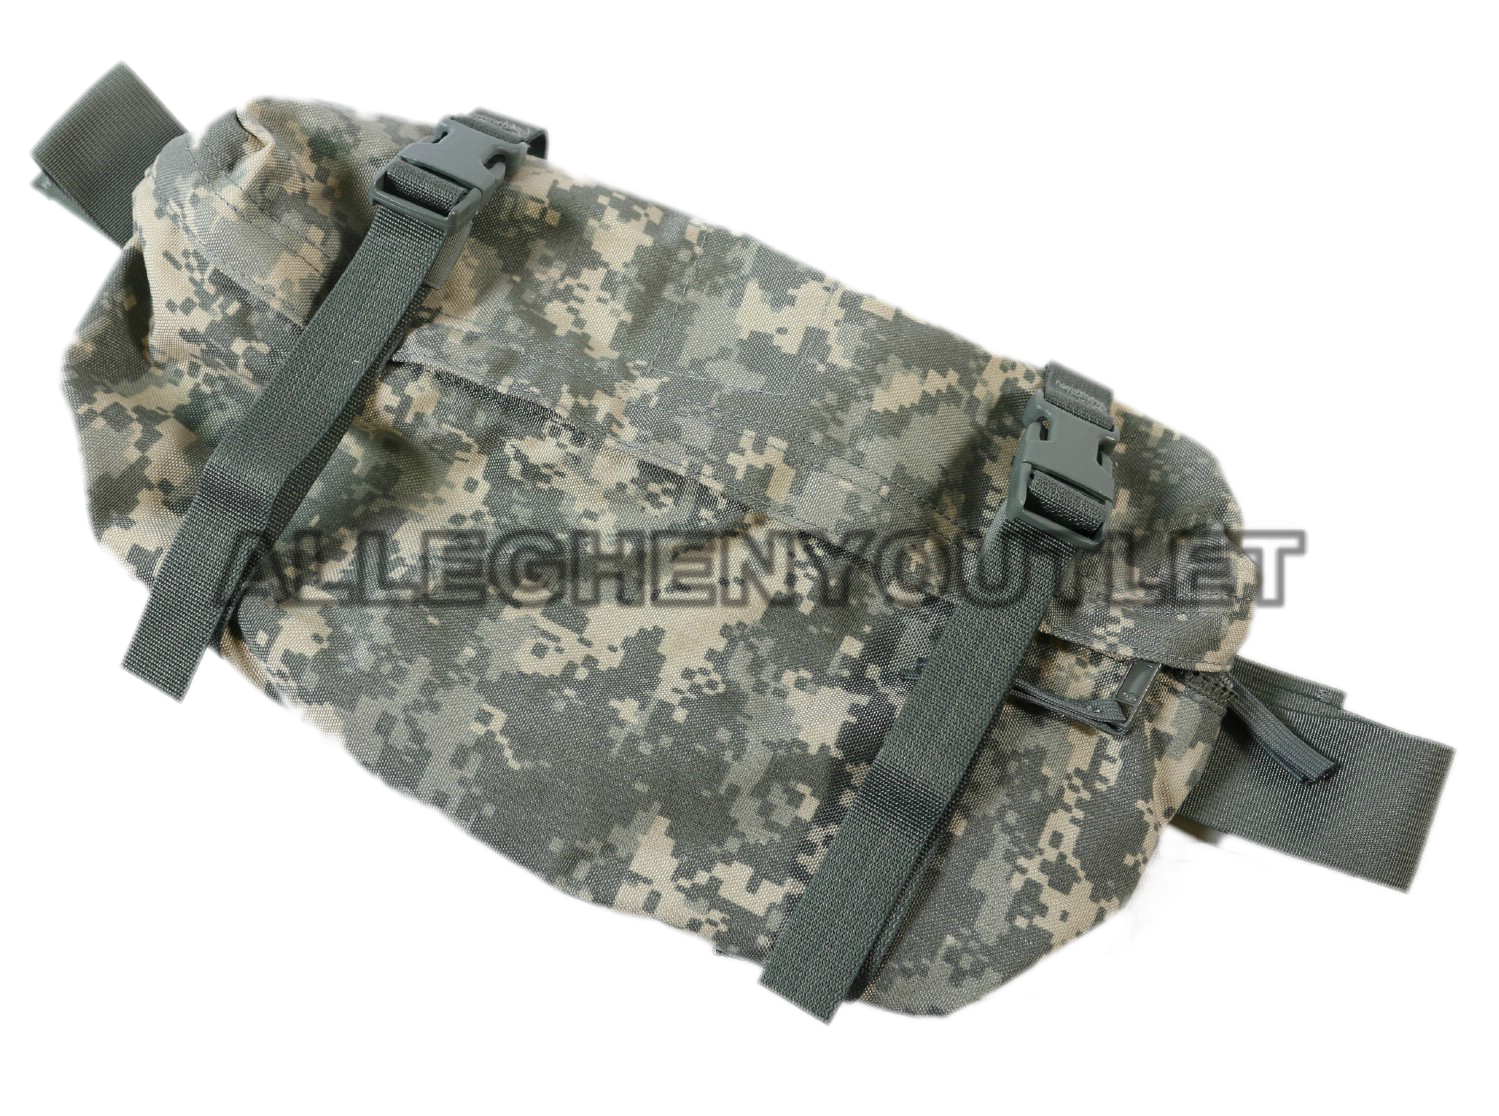 Lot of 2 MOLLE II Waist Pack Butt/Fanny Hip Bag ACU US Military VGC EXCELLENT 3